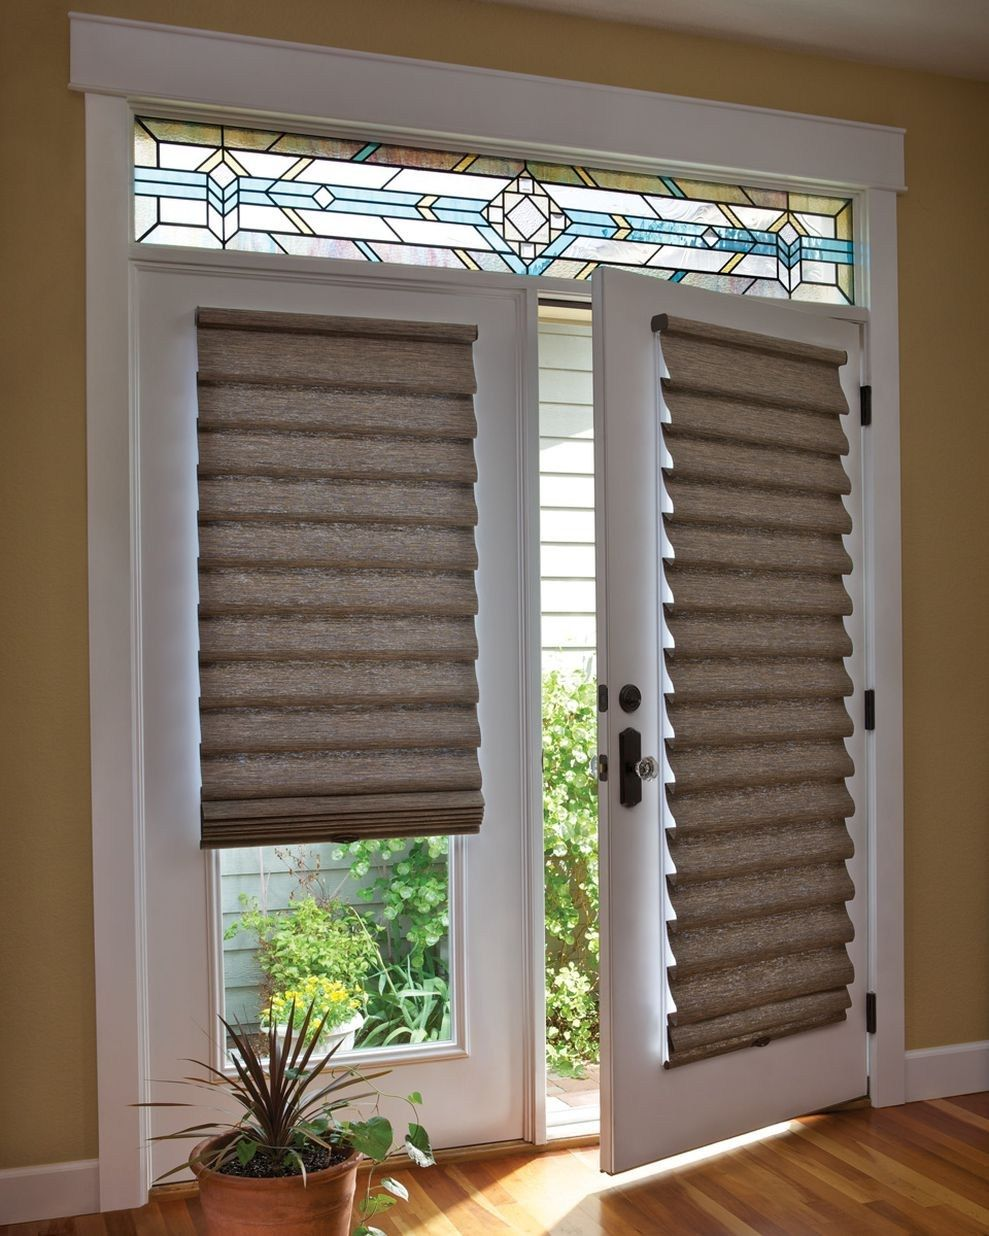 Window privacy ideas  modern window treatment ideas for privacy and style   pinterest